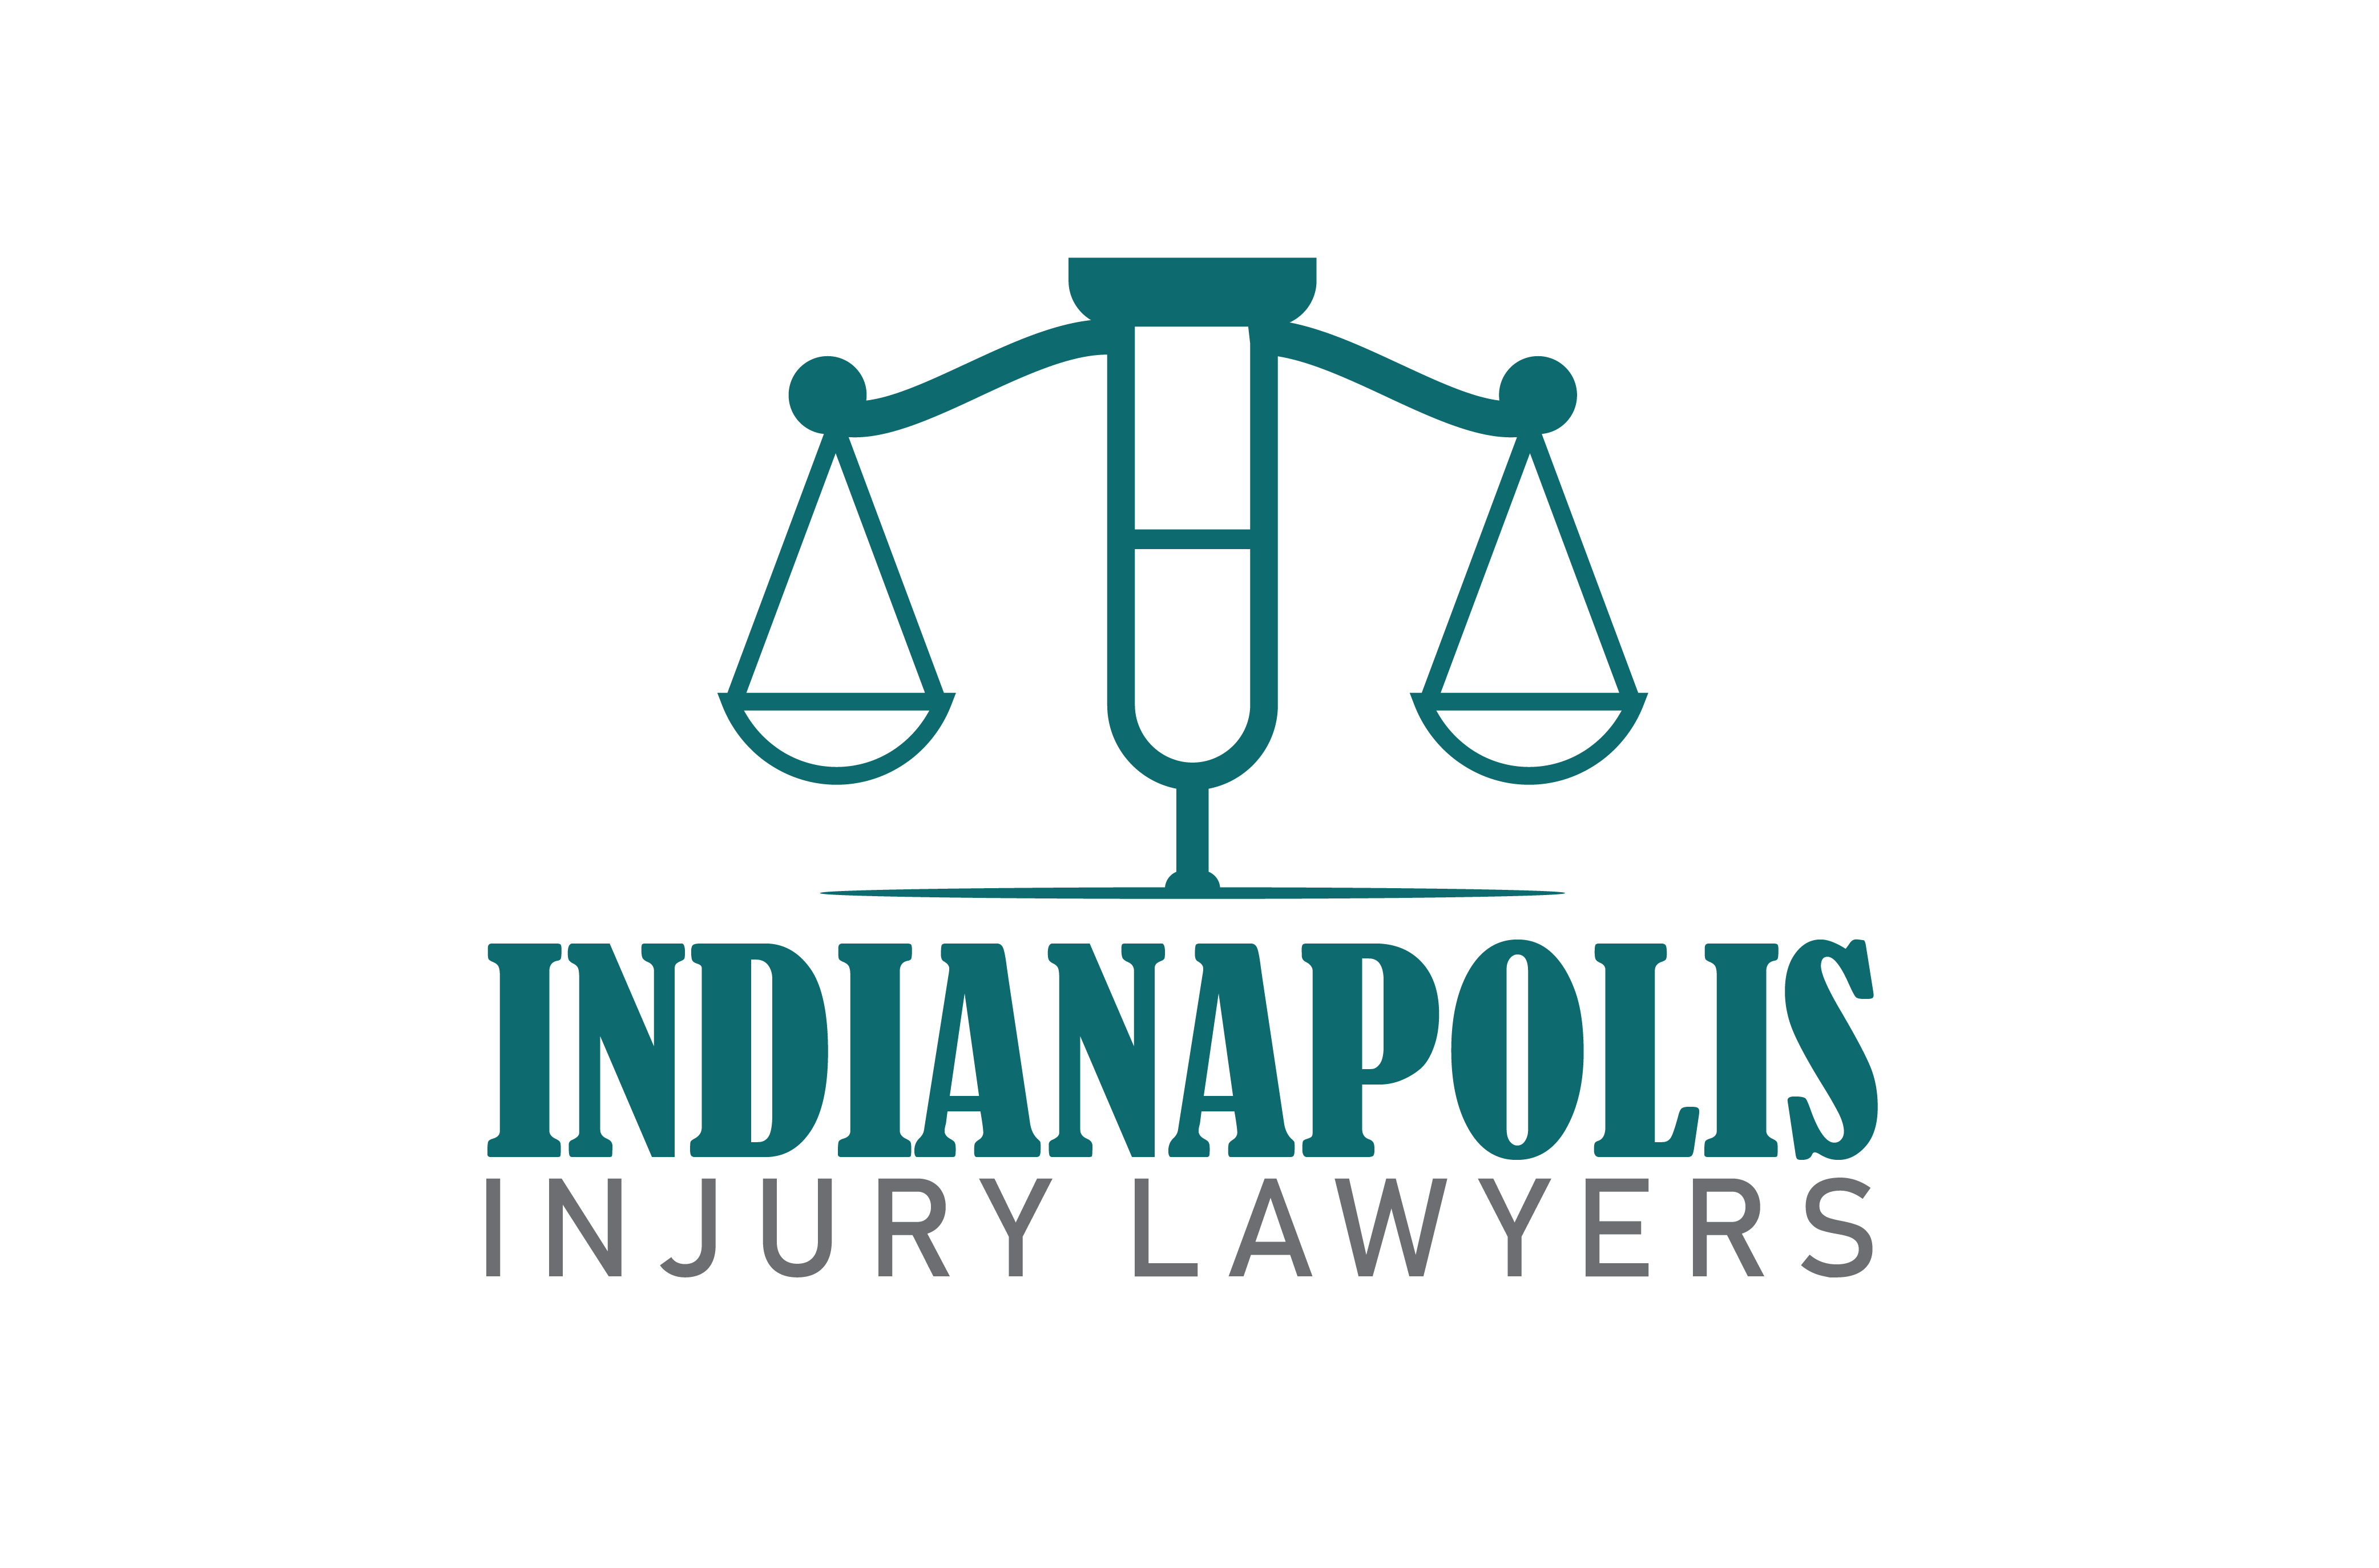 Indianapolis injury lawyers